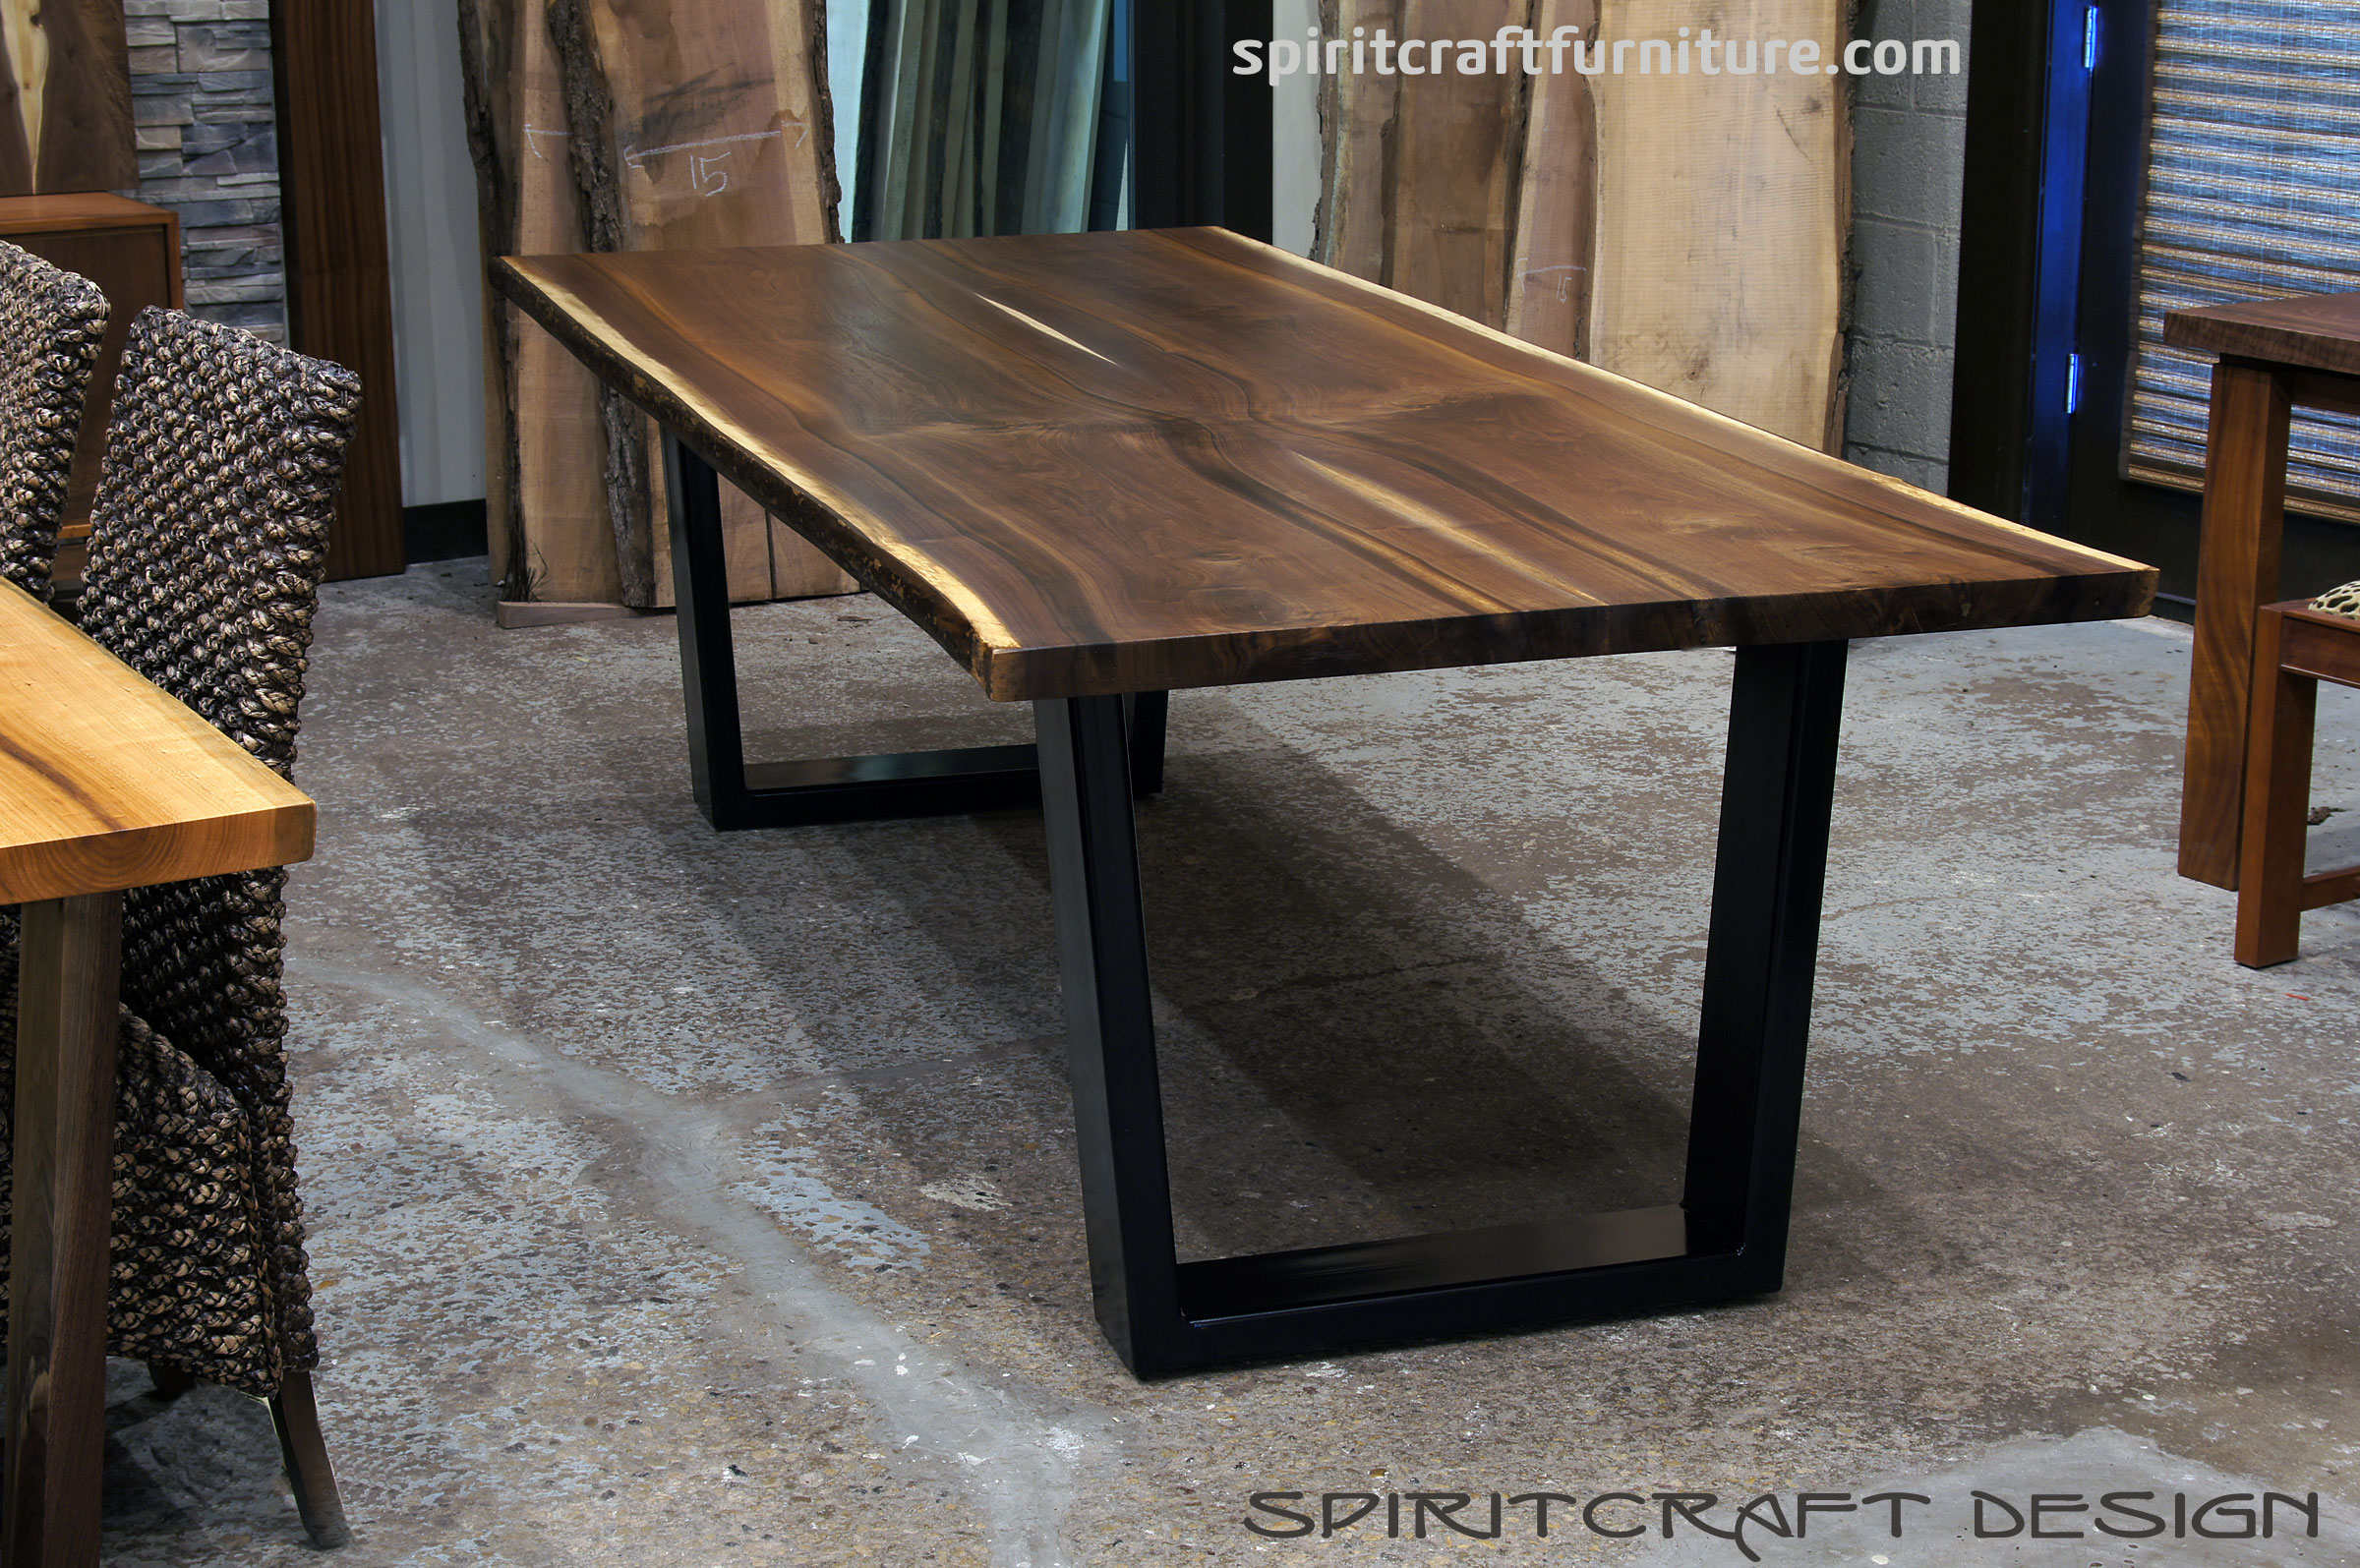 Custom solid hardwood table tops live edge slabs : live edge slab black walnut dining table with black trapezoid legs for chicago illinois area client by spiritcraft furniture dundee from www.greatspirithardwoods.com size 2400 x 1595 jpeg 927kB